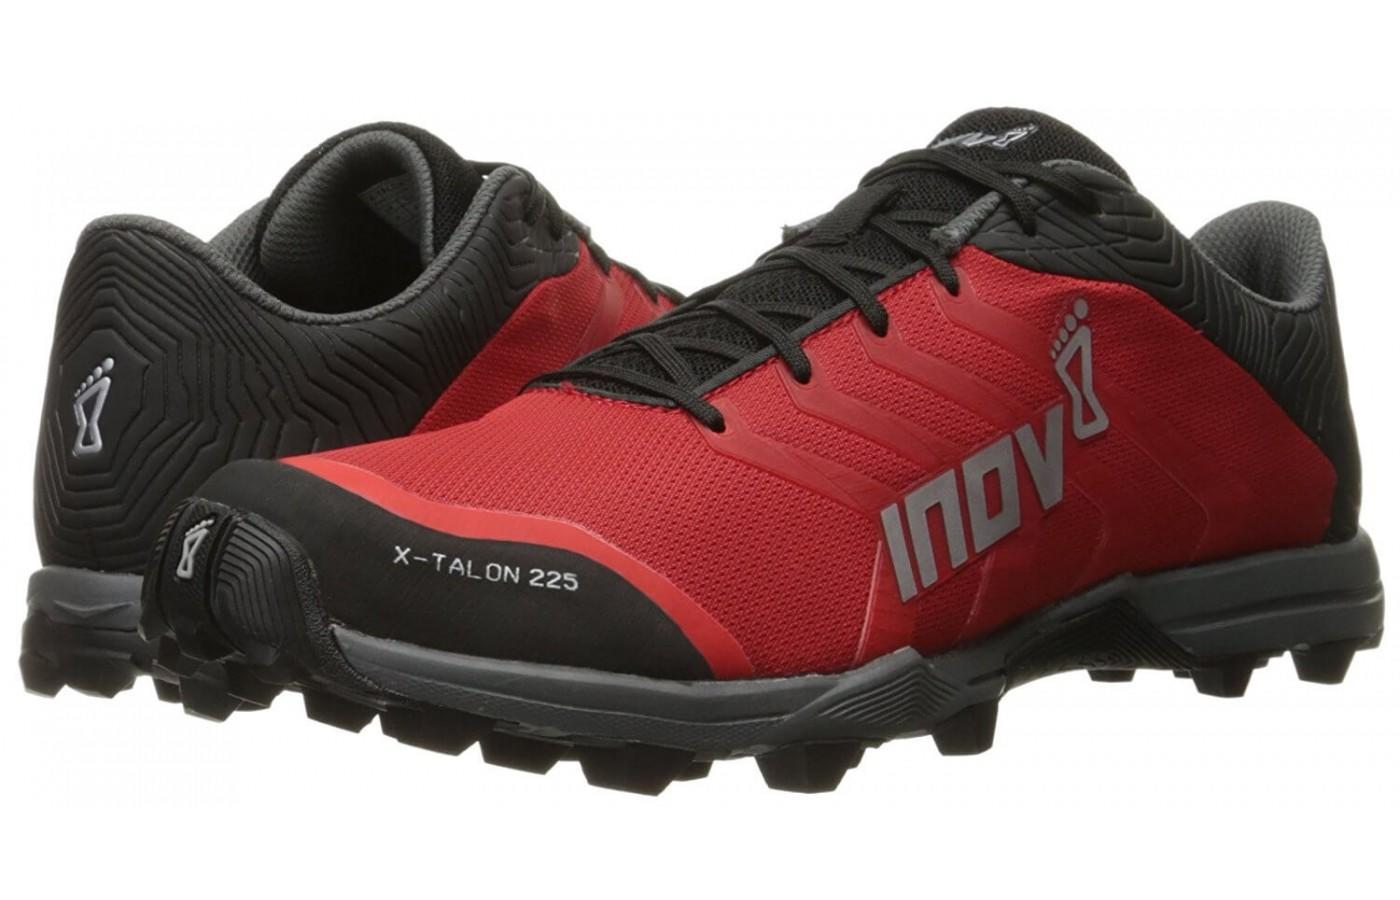 With minimal cushioning, these shoes are aggreassive and lightweight keeping you nimble in the messiest of terrain